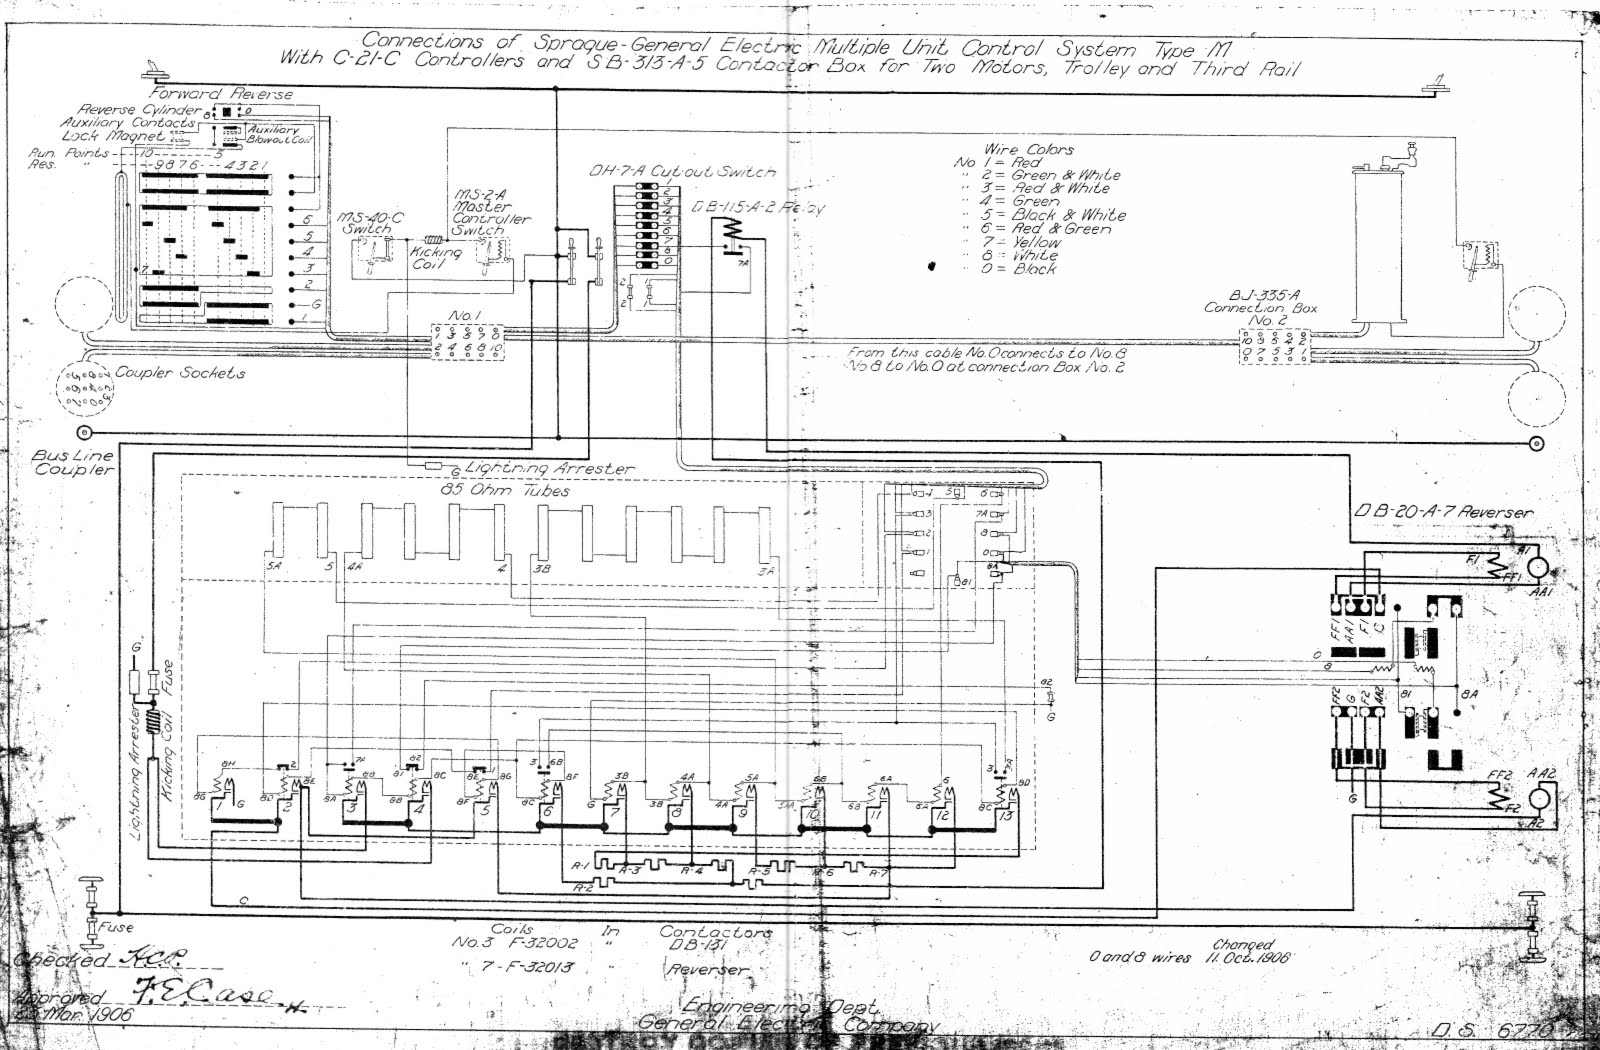 mack ch600 wiring diagram kenworth t800 wiring diagram